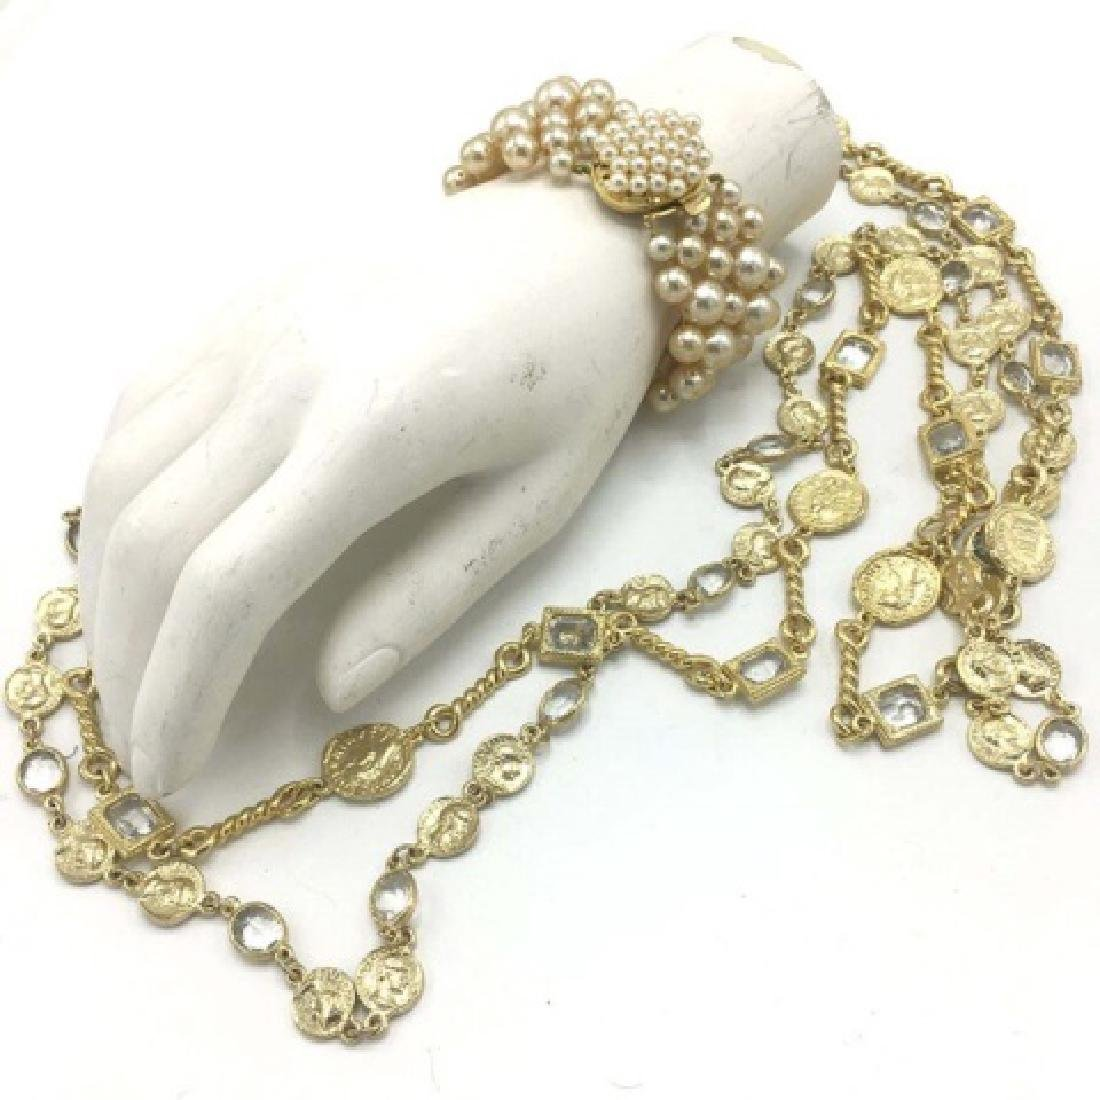 Costume Pearl Bracelet, Crystal & Coin Necklace